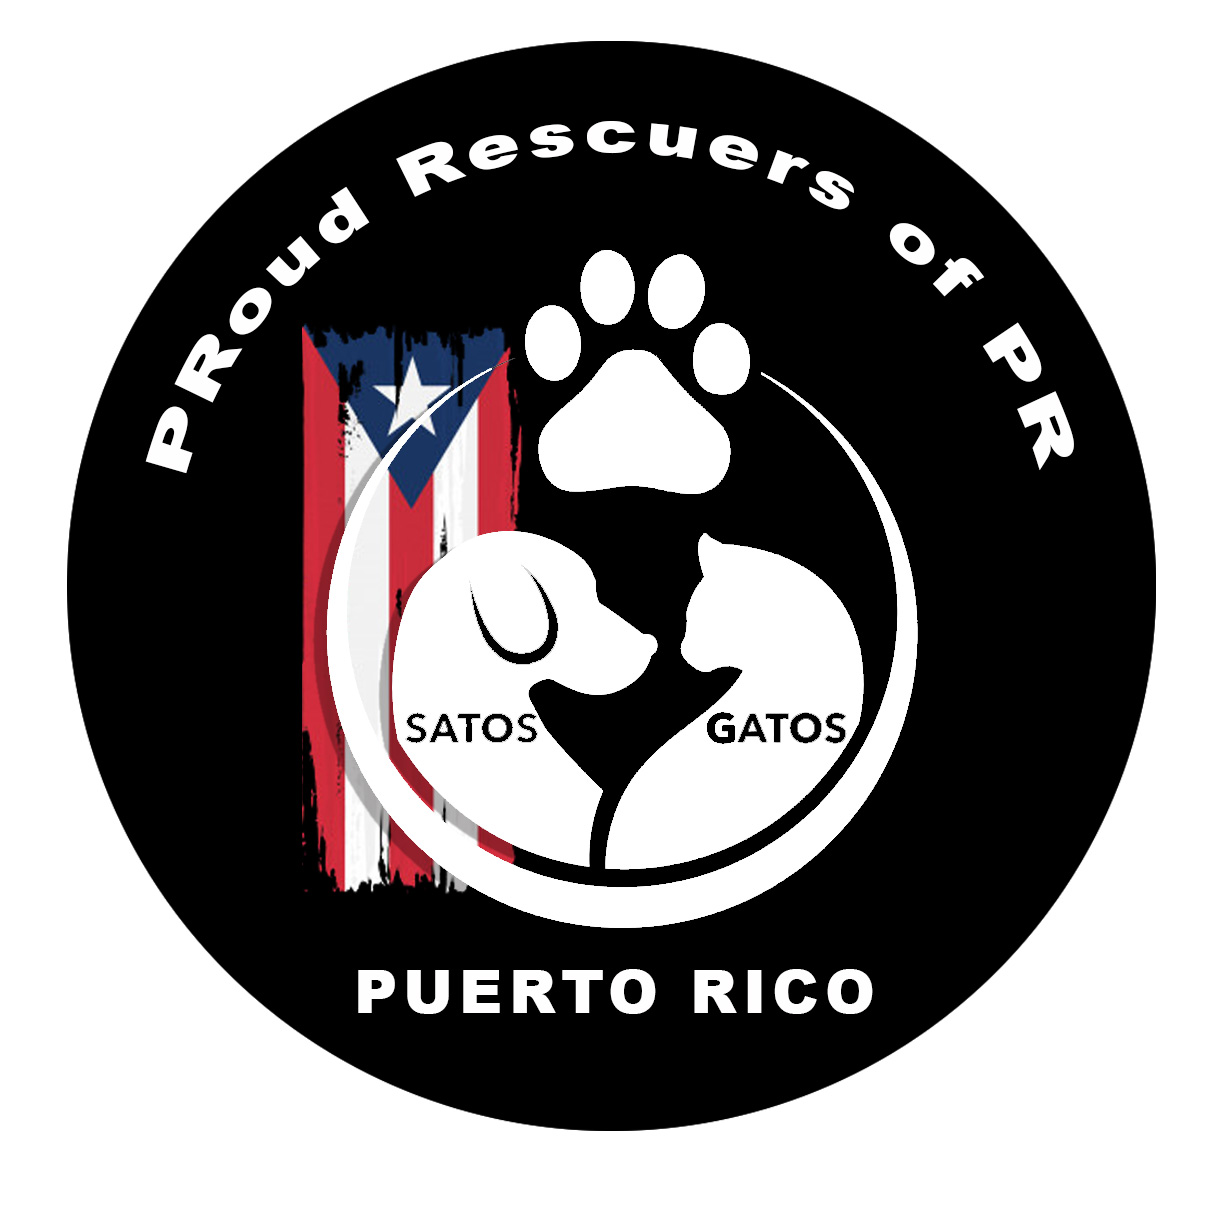 Proud Rescuers of PR